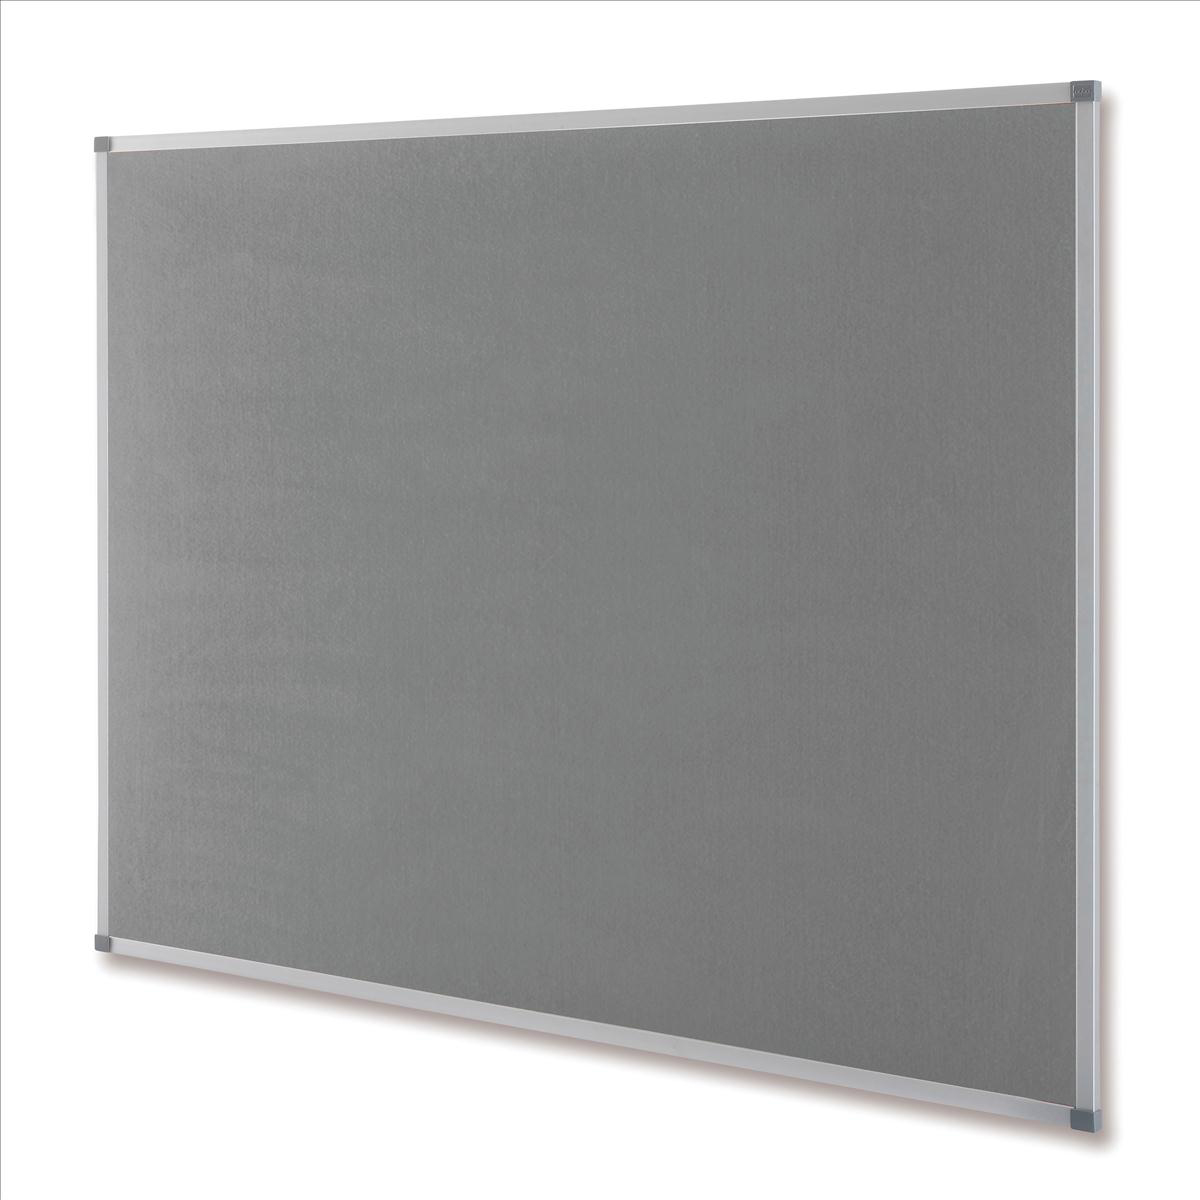 Nobo Classic Noticeboard Felt with Aluminium Frame W900xH600mm Grey Ref 1900911